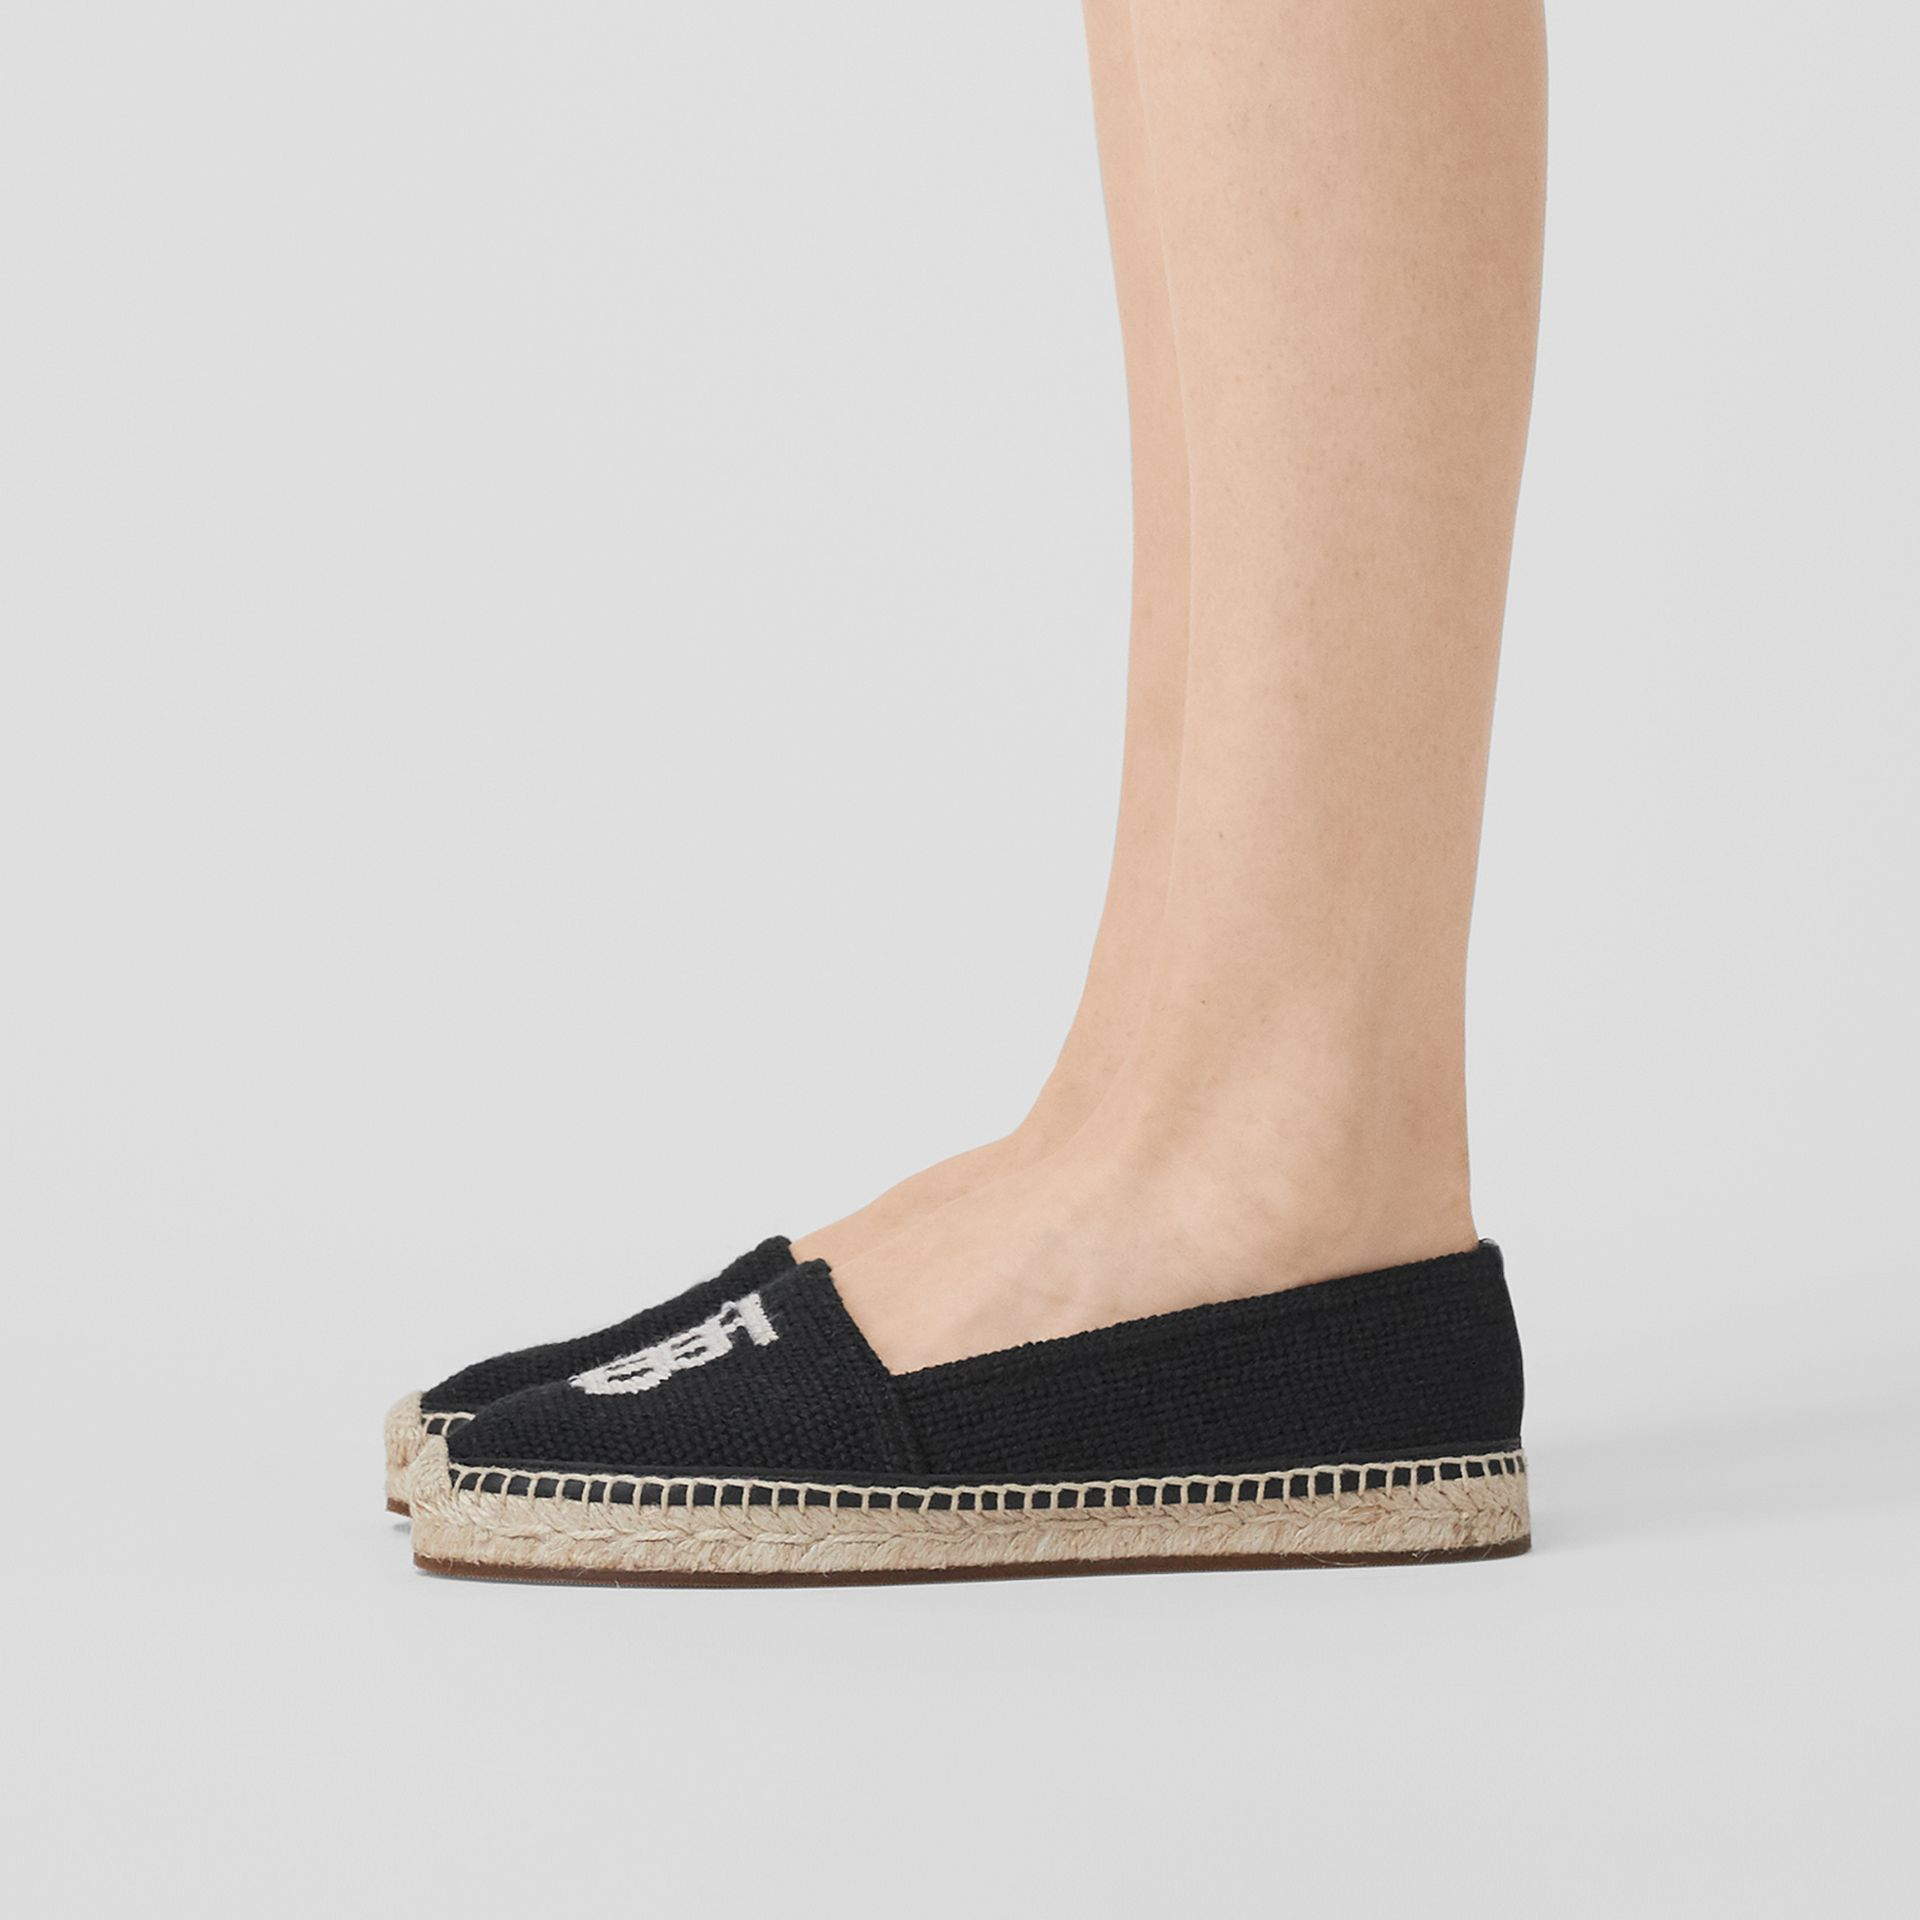 Monogram Motif Cotton and Leather Espadrilles in Black/ecru - Women | Burberry Australia - gallery image 2